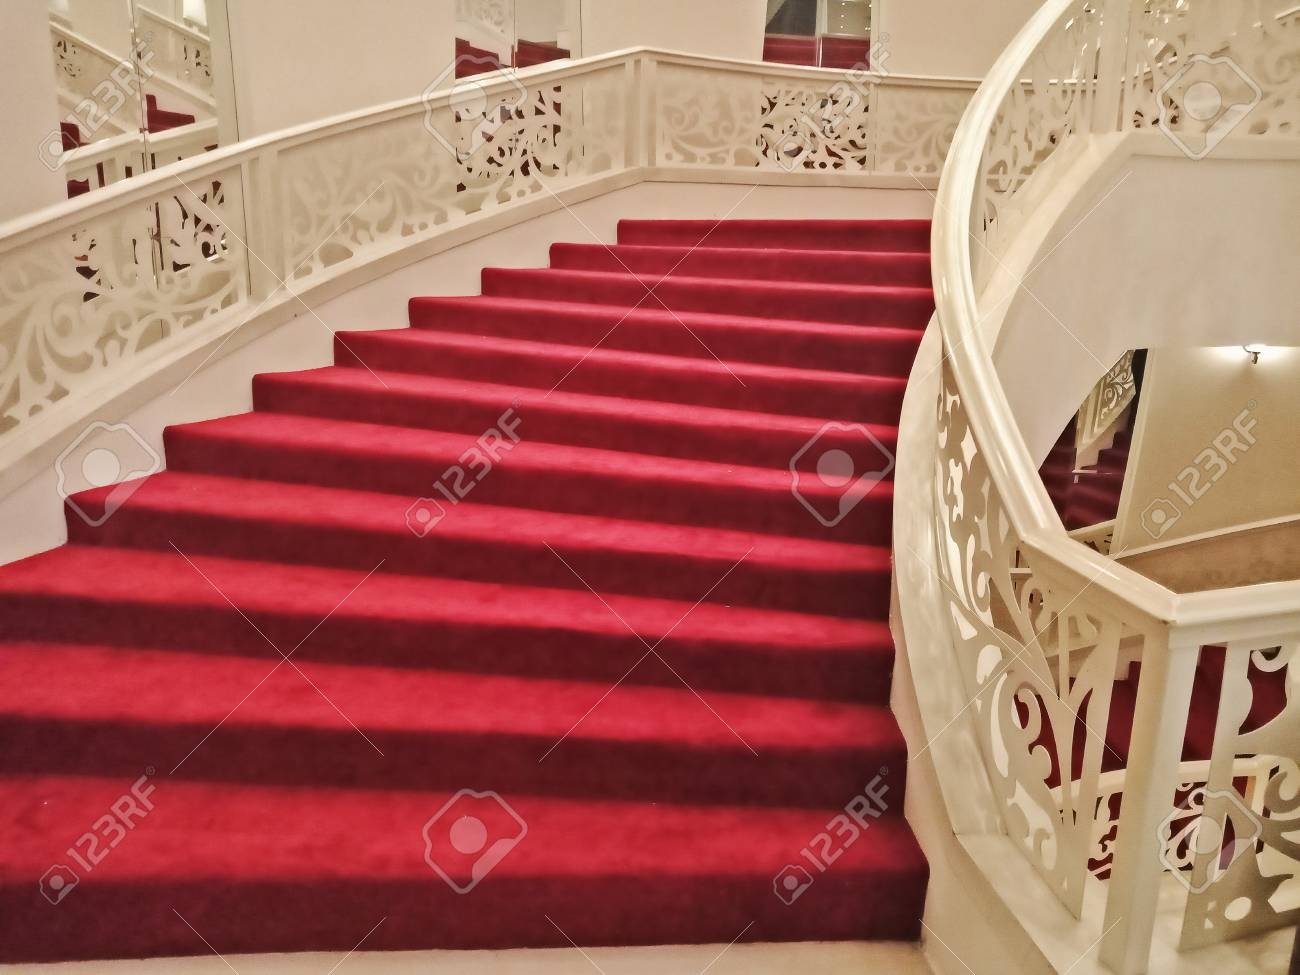 Interior House With Curved Stair And Red Carpet Stock Photo | Stairs With Red Carpet | Event | Gold | Spiral Staircase | Traditional | White